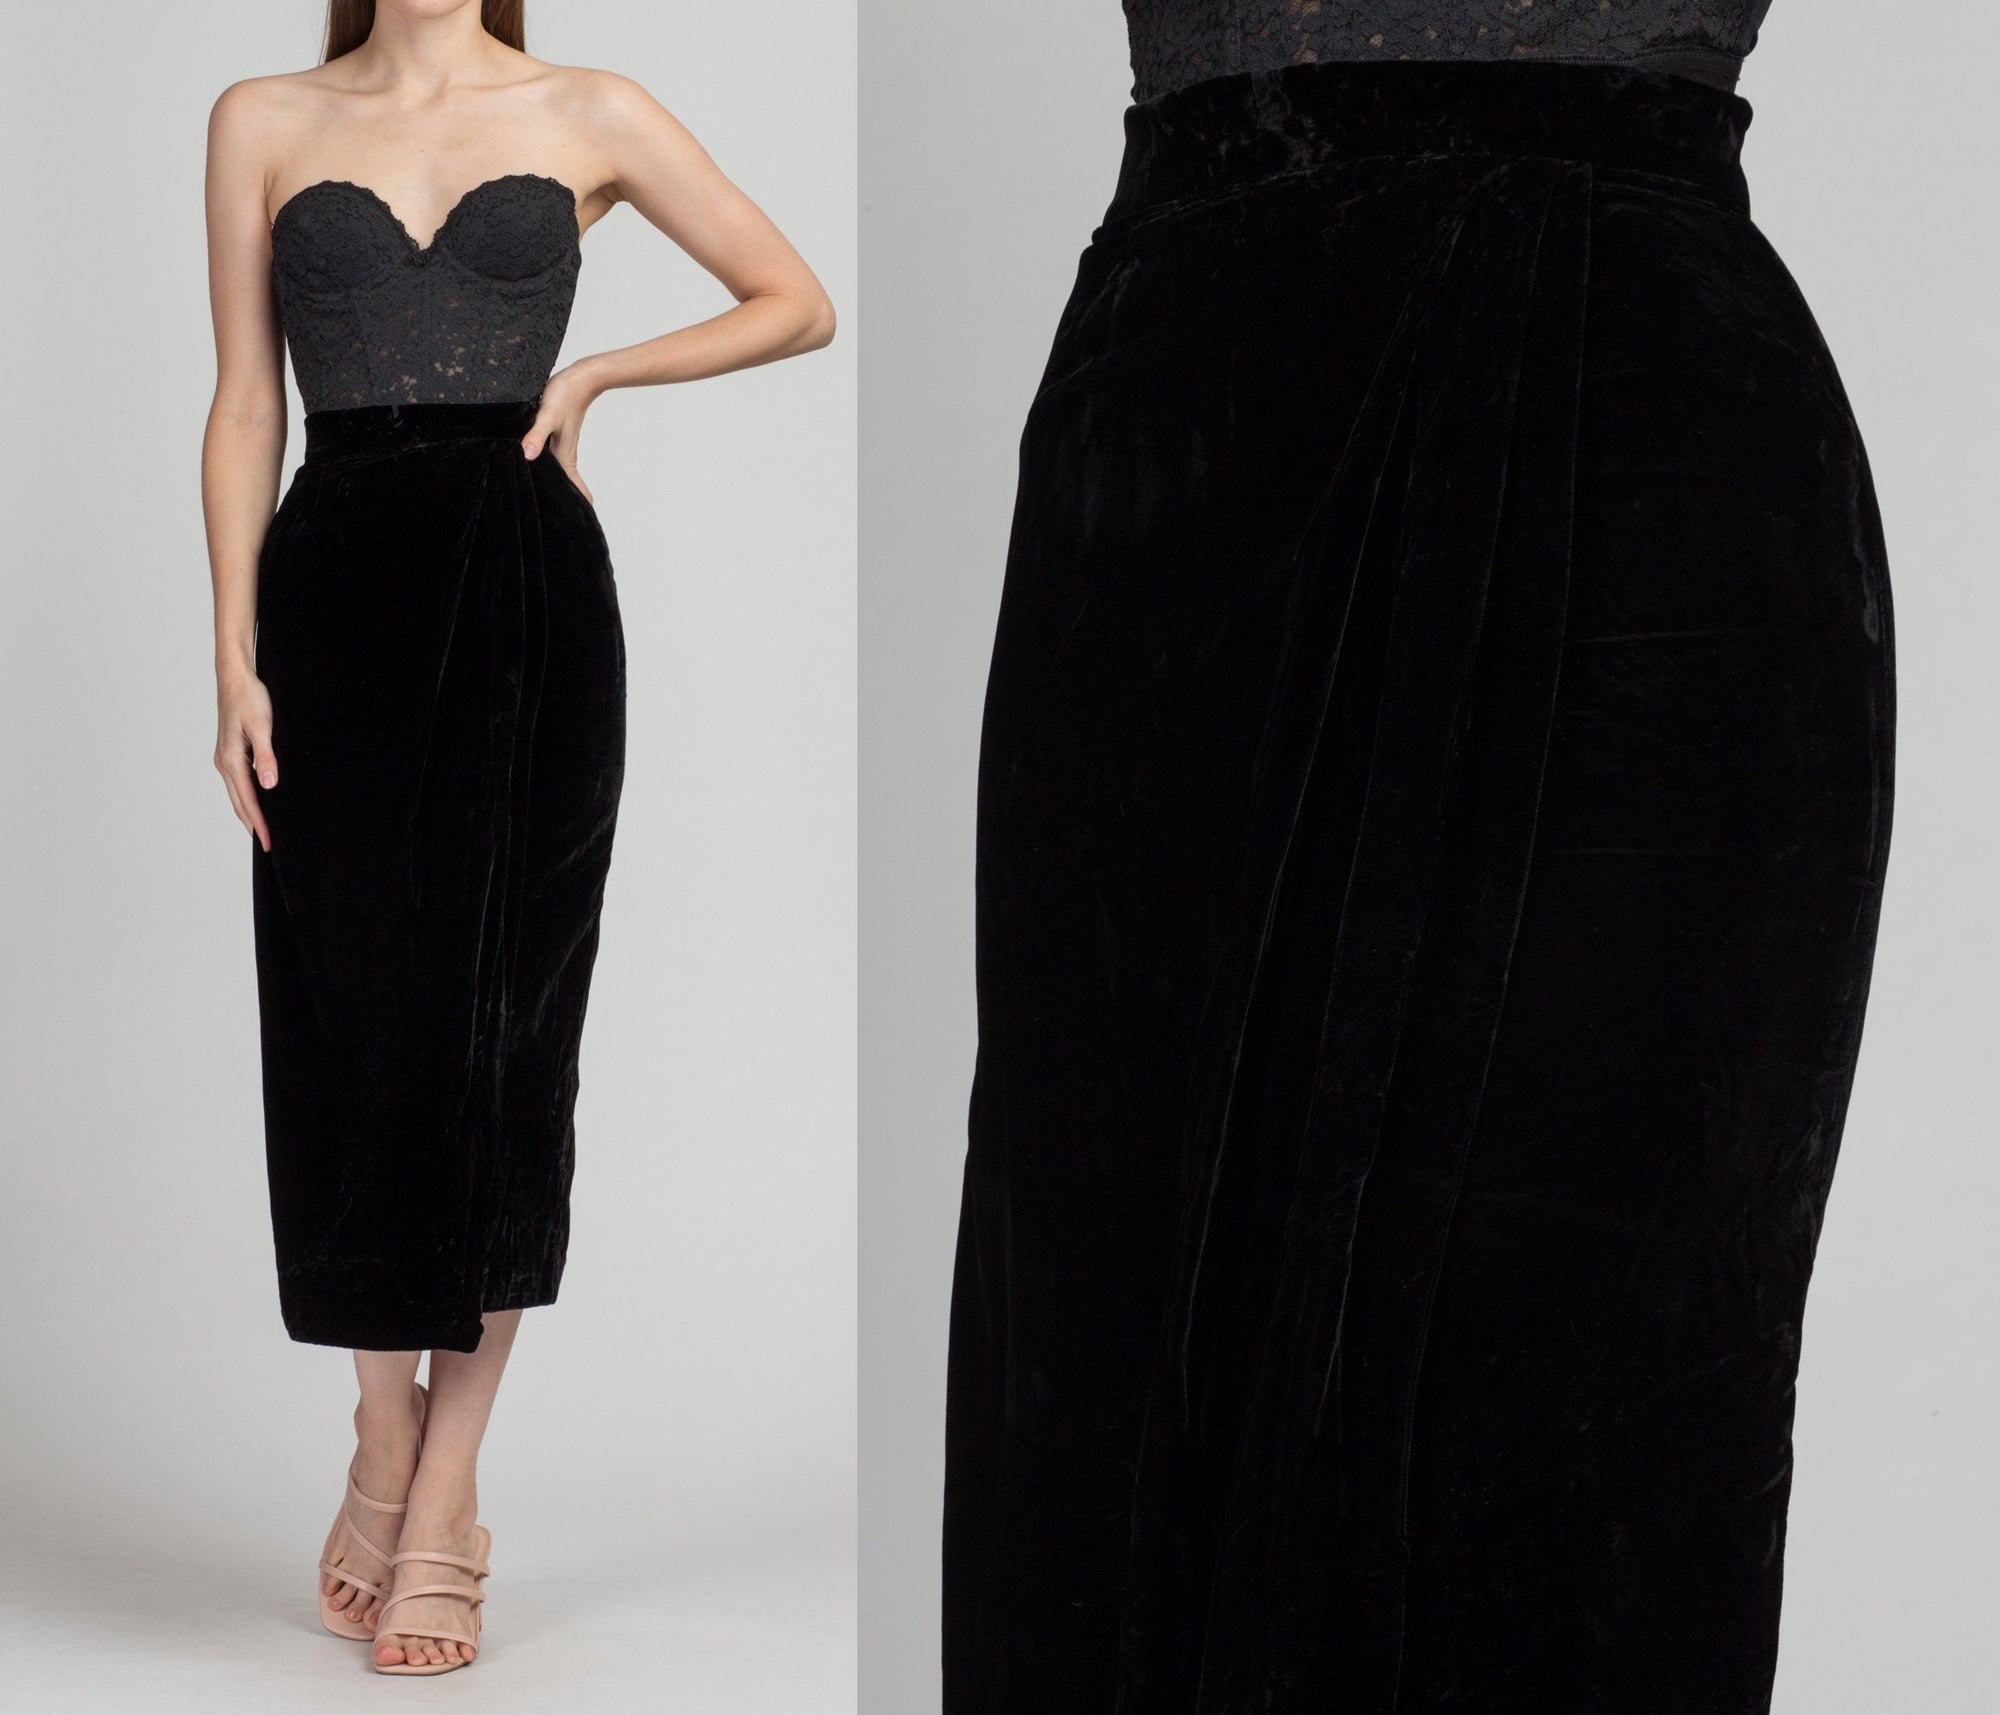 Vintage Black Velvet Draped Midi Skirt - Extra Small | 90s Minimalist Wrap Style Pencil Skirt